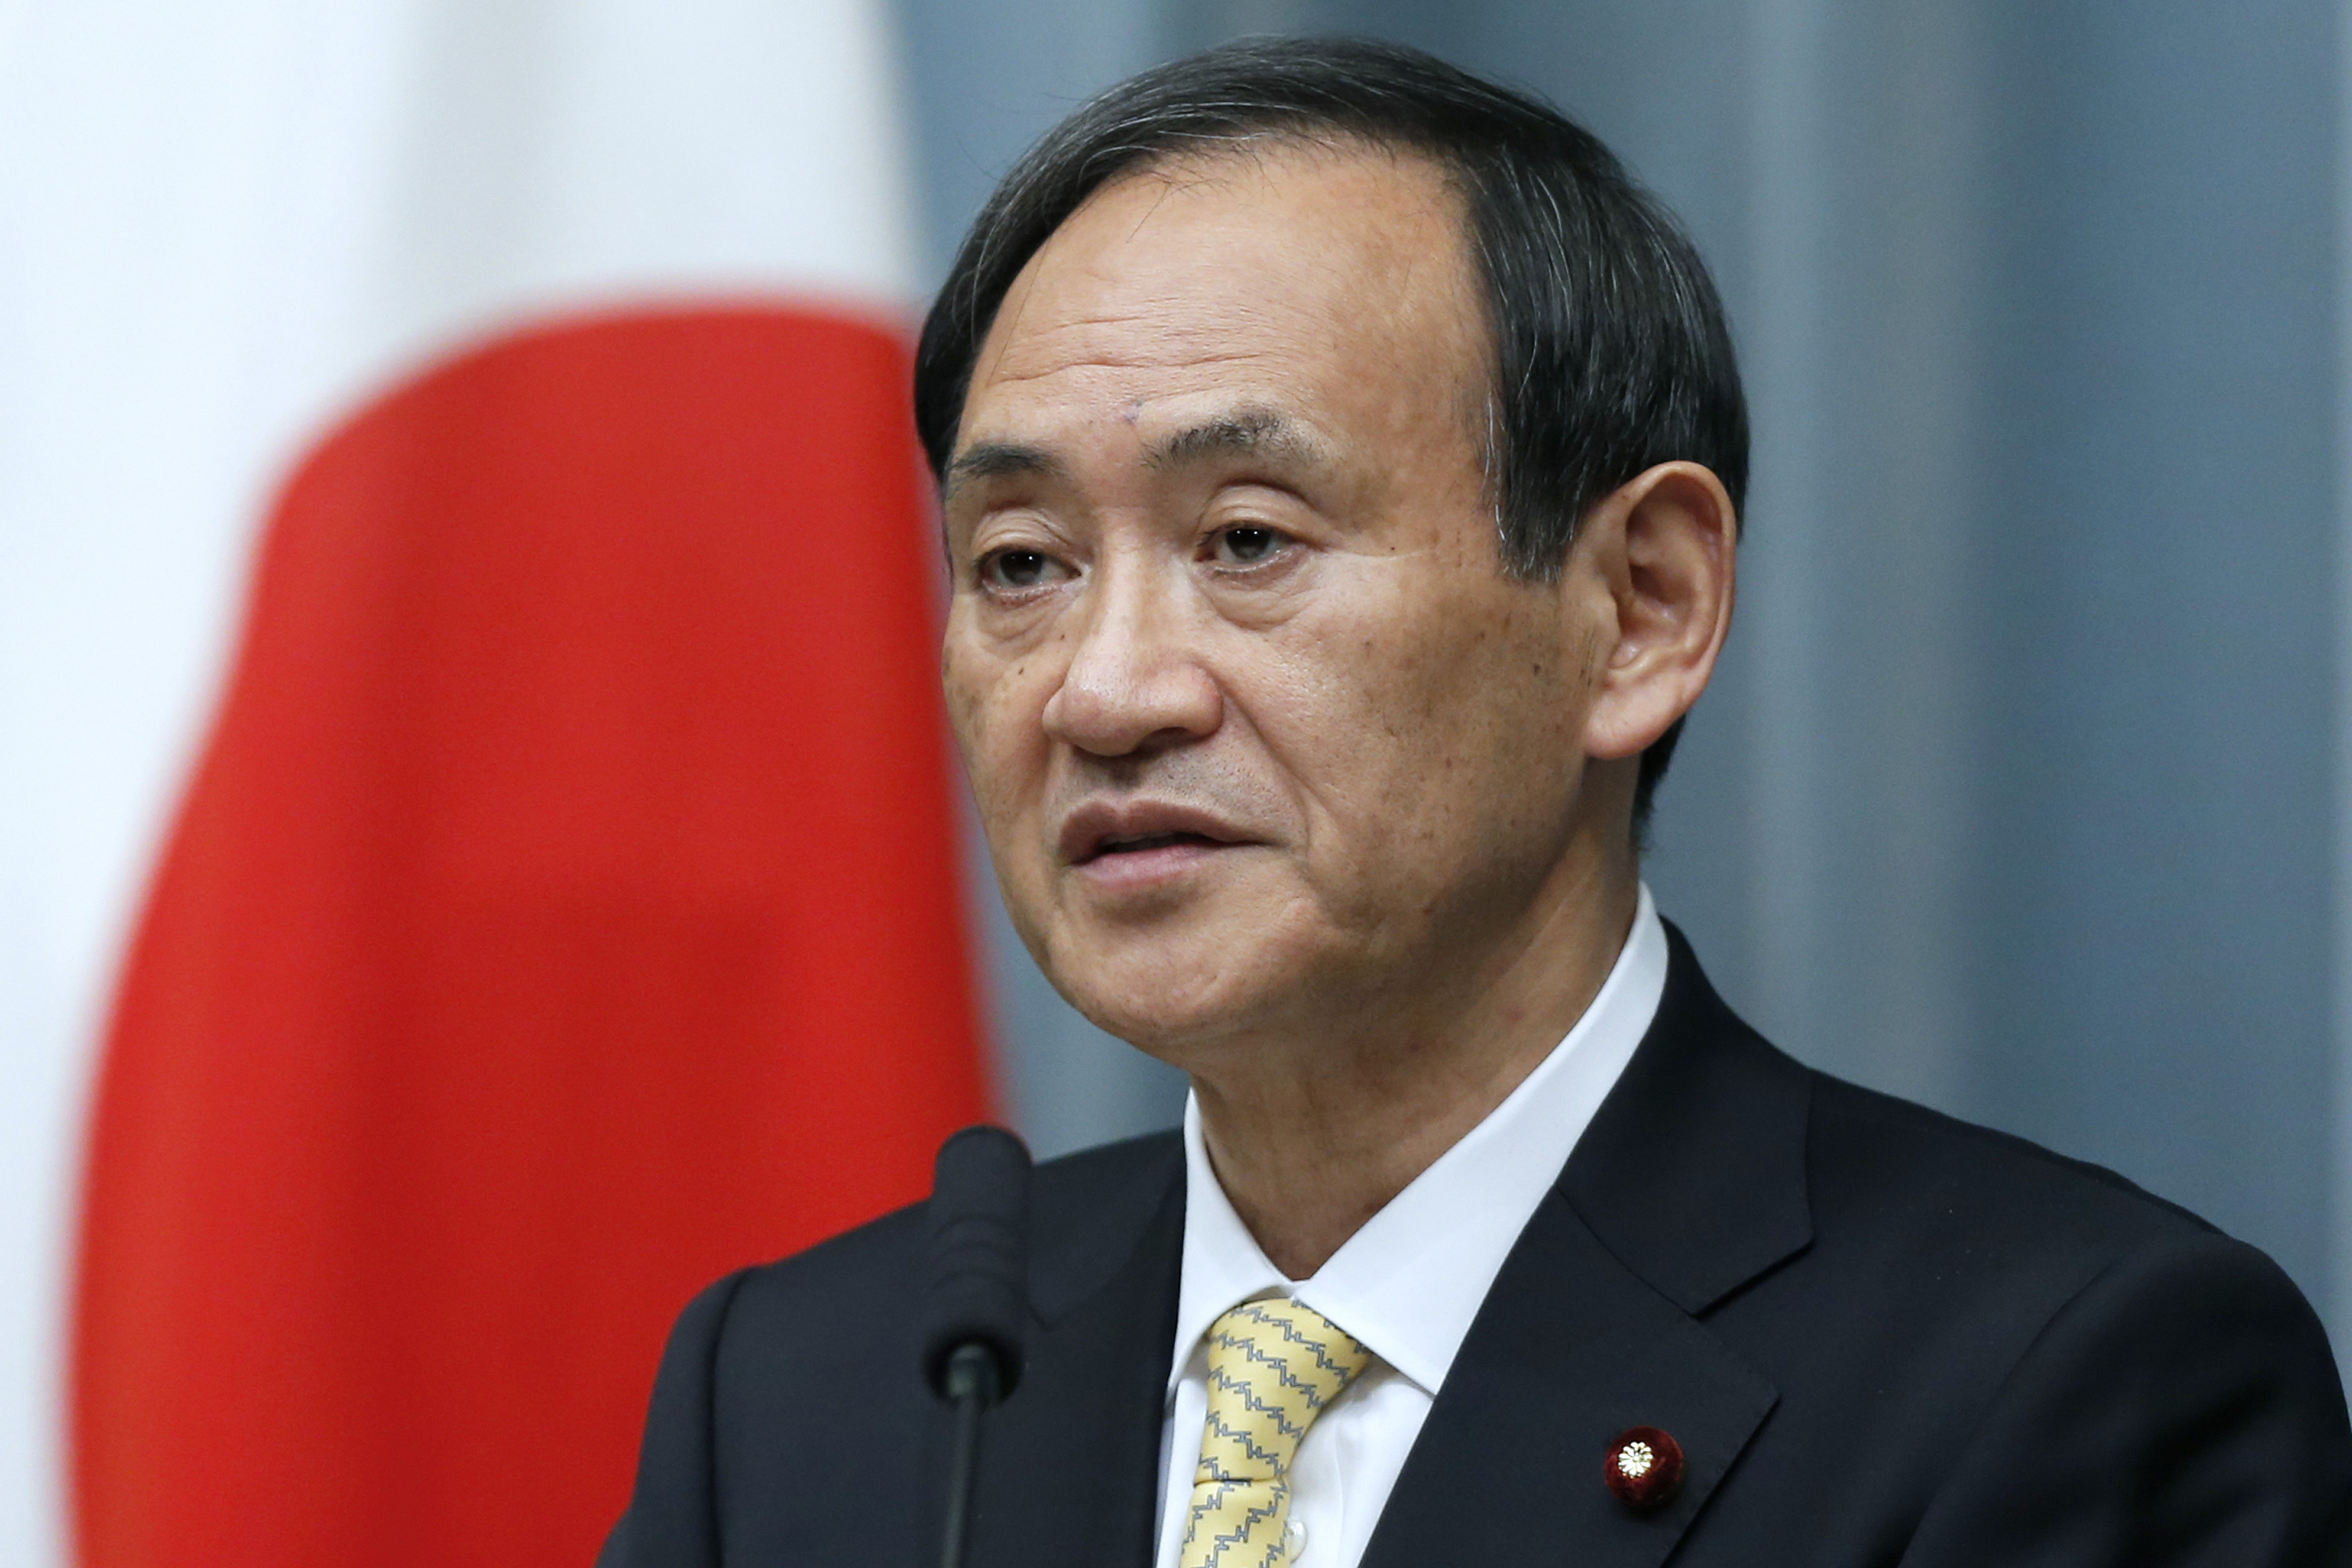 Japan's PM to visit India to strengthen regional ties